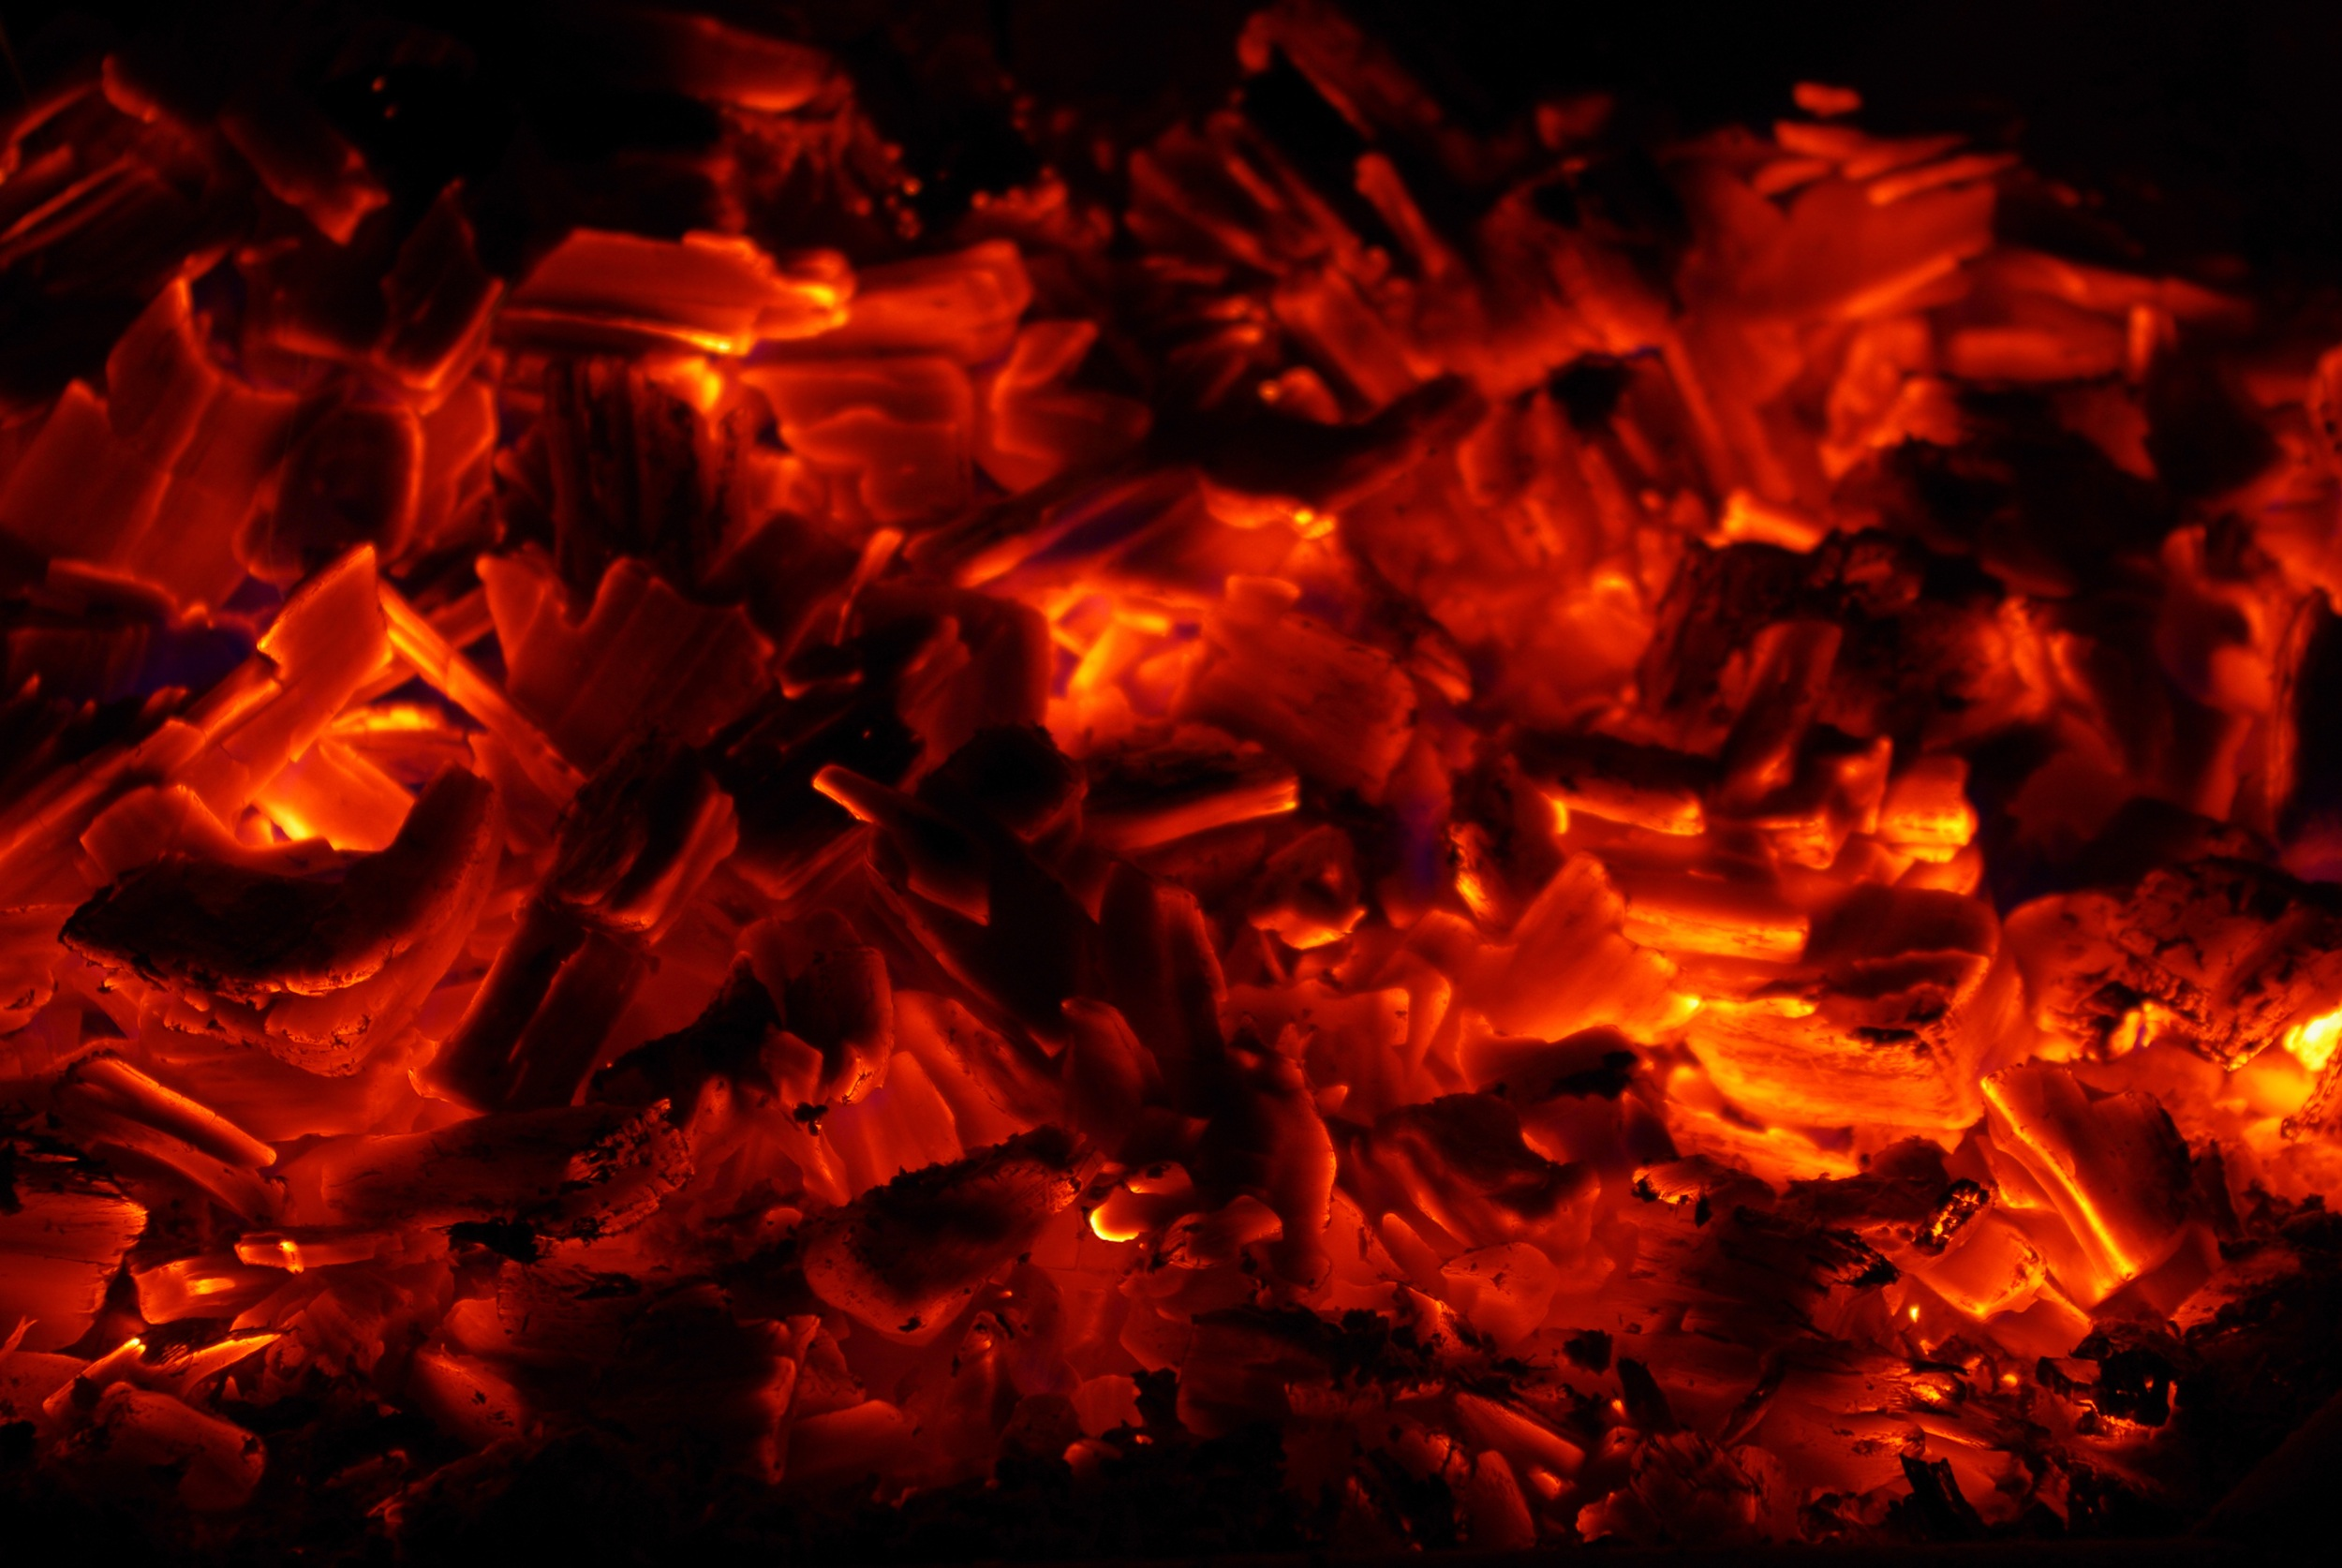 Free photos: Burning - 1326 images, Burning photos, Burning ...